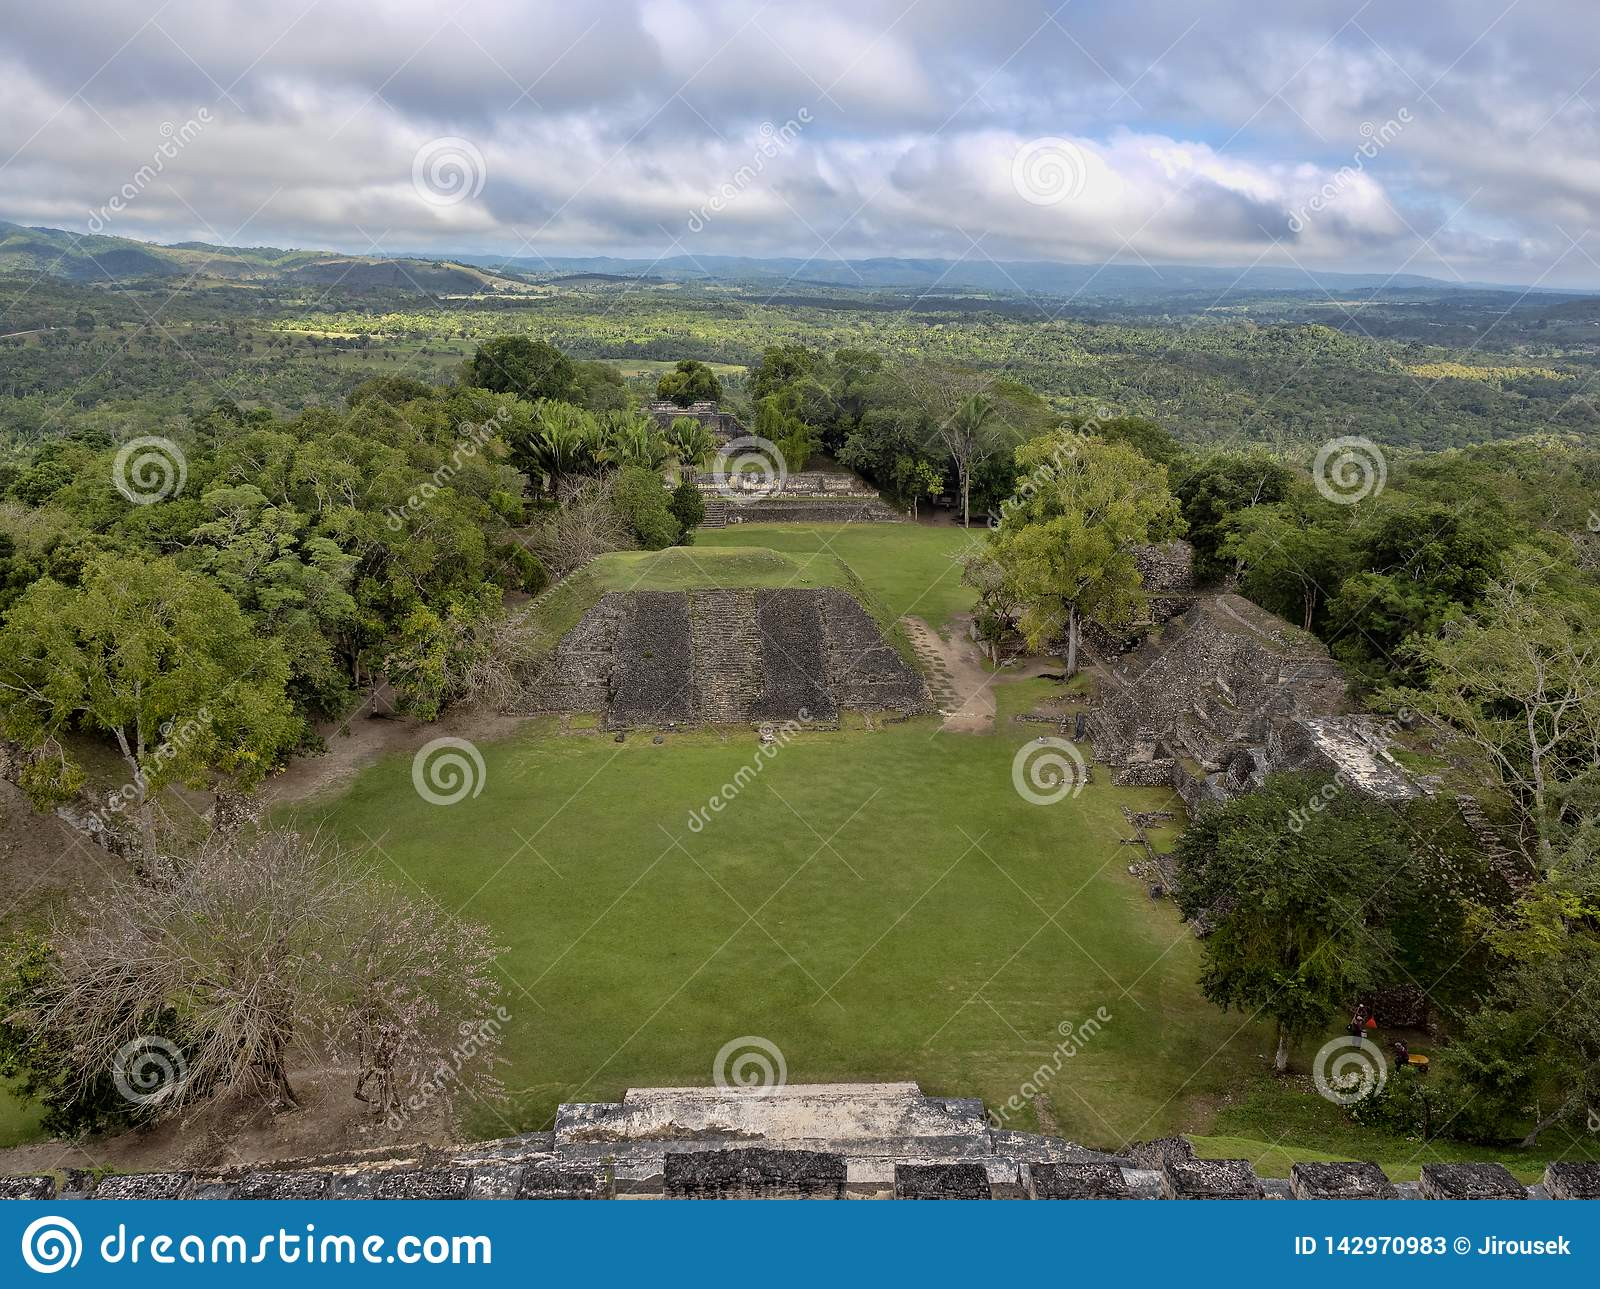 Mayan archaeological monuments of Xunantunich, Belize